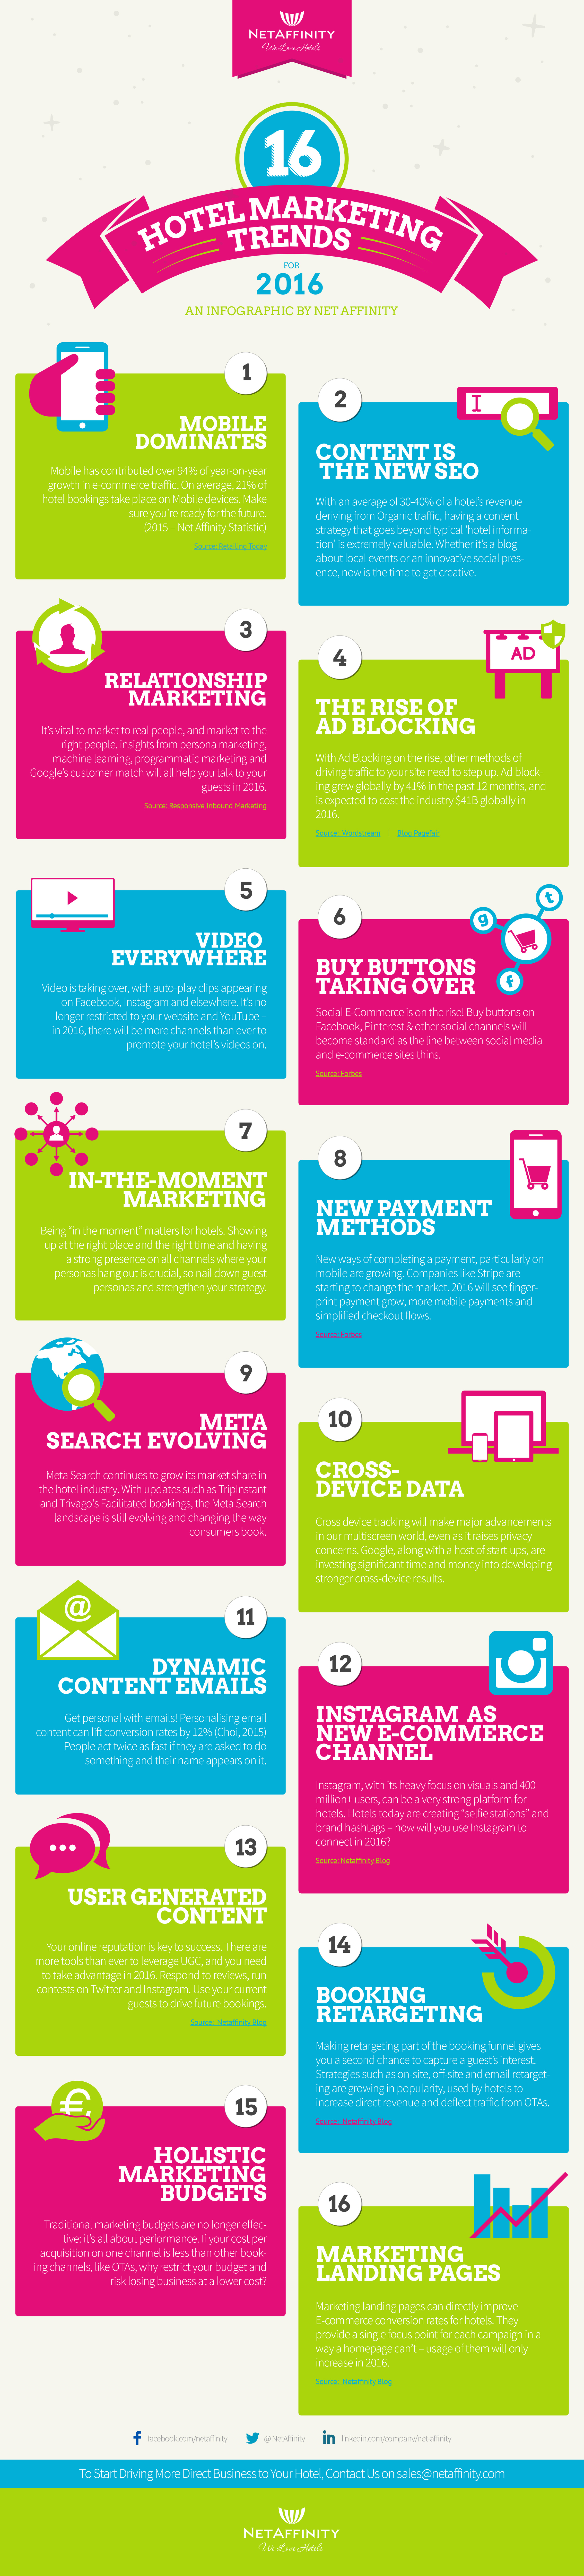 find out the best hotel marketing trends for 2016